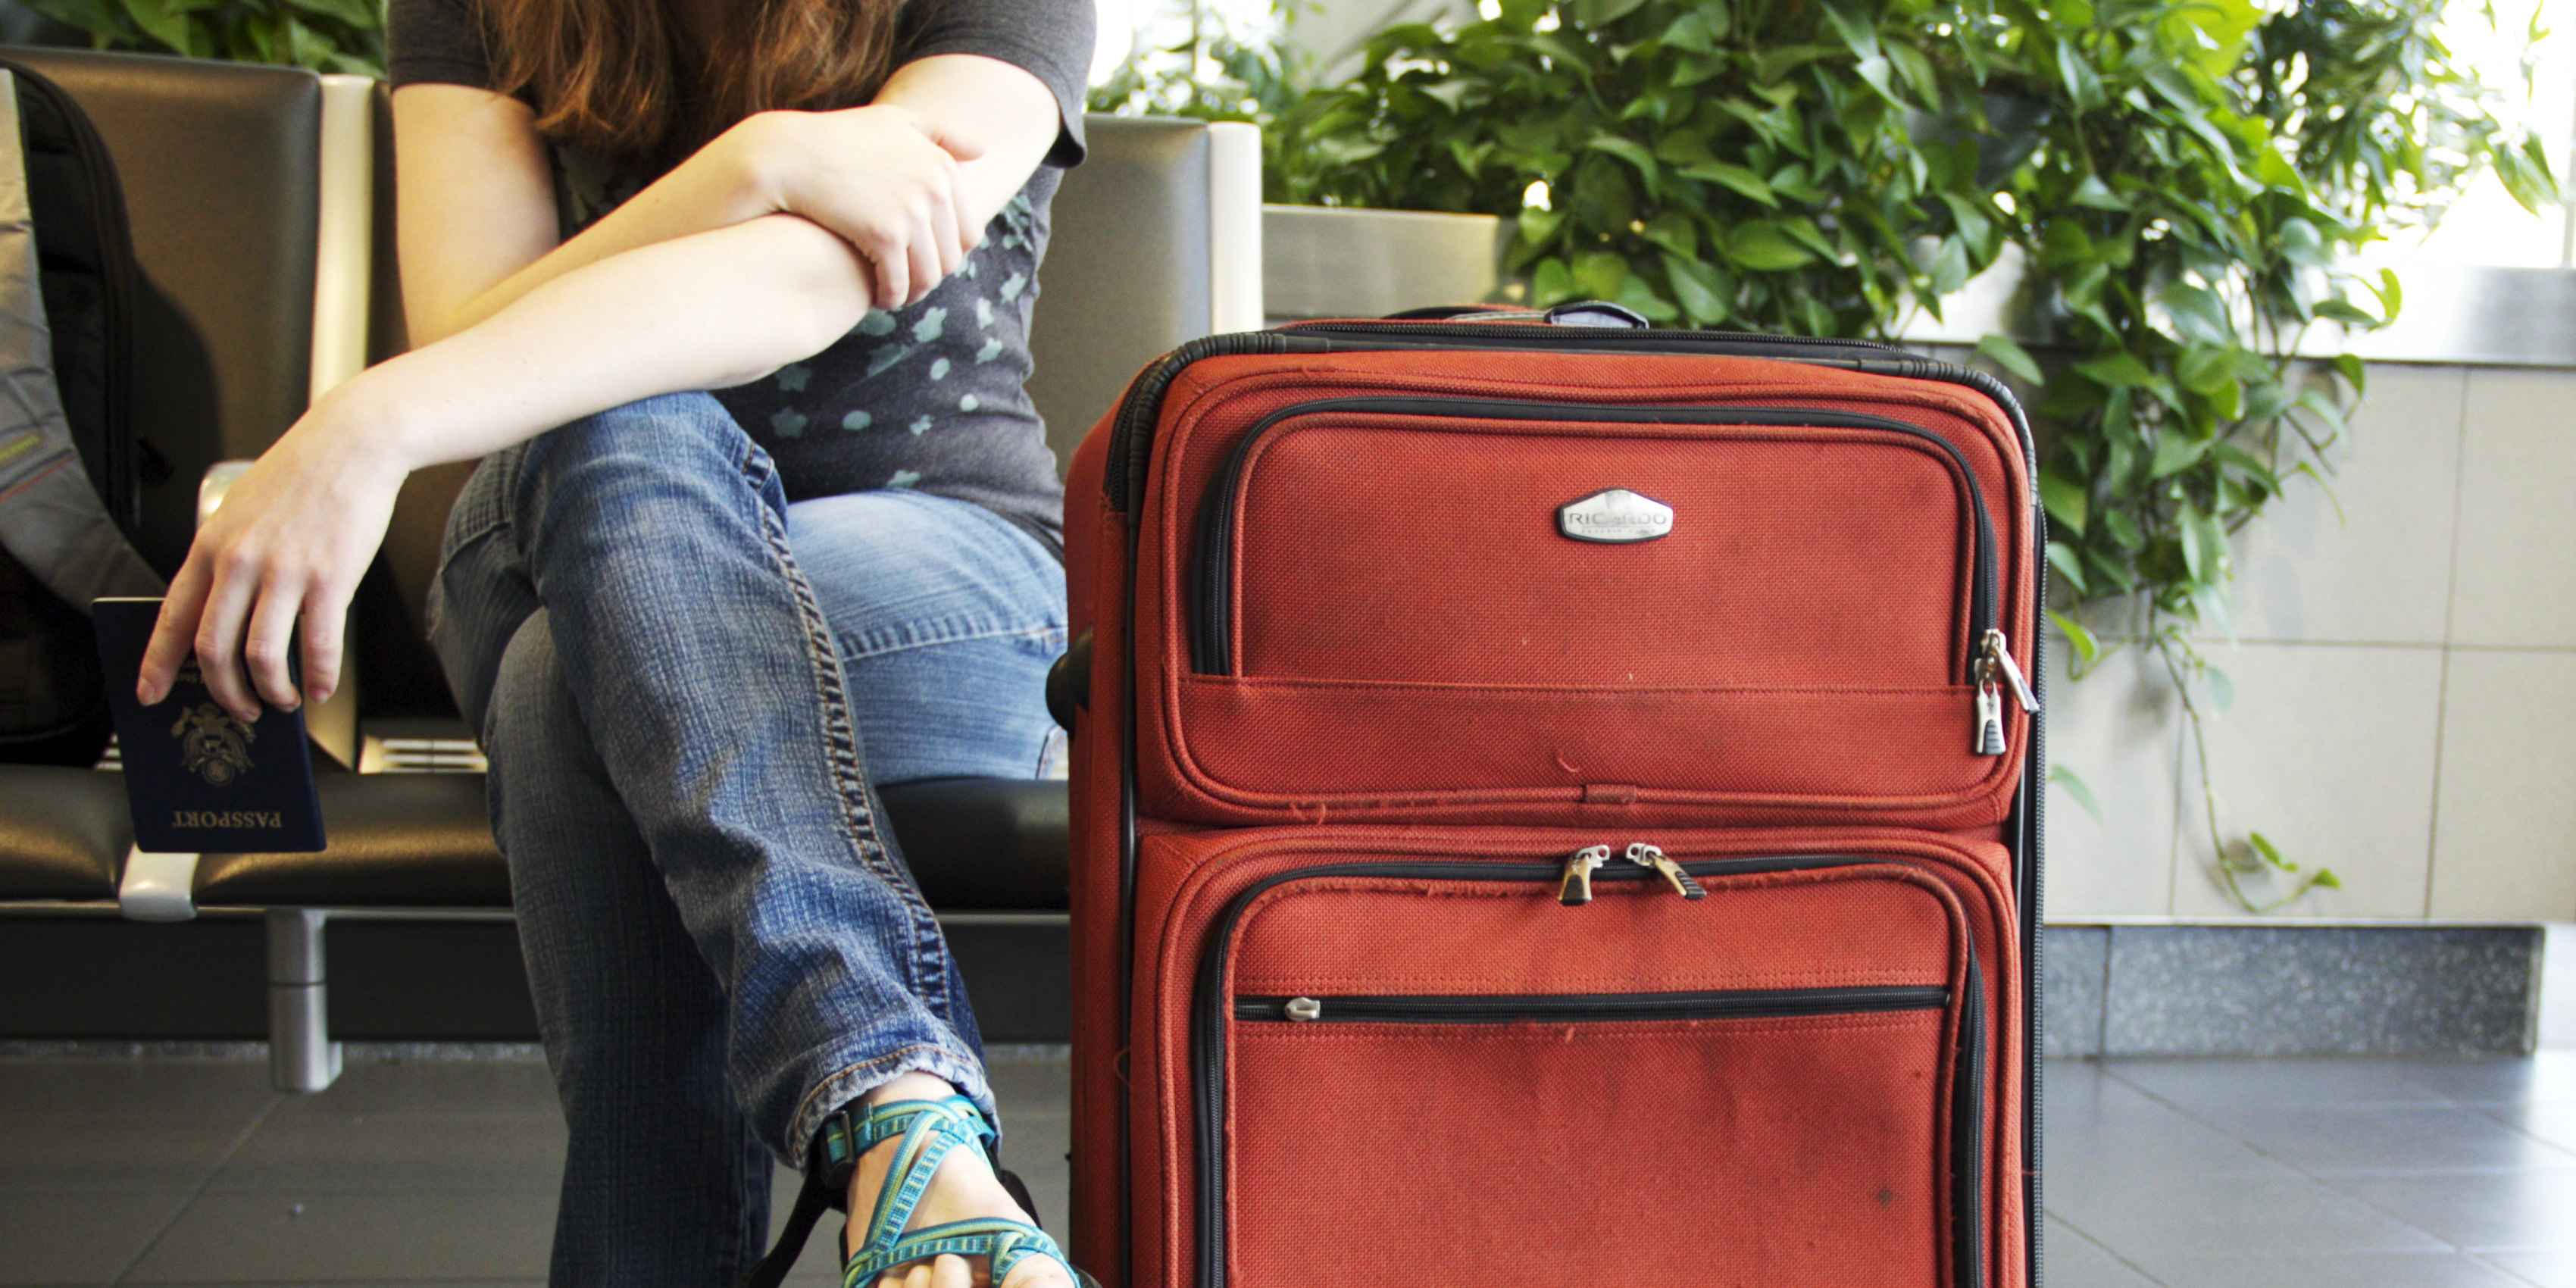 purchase travel insurance